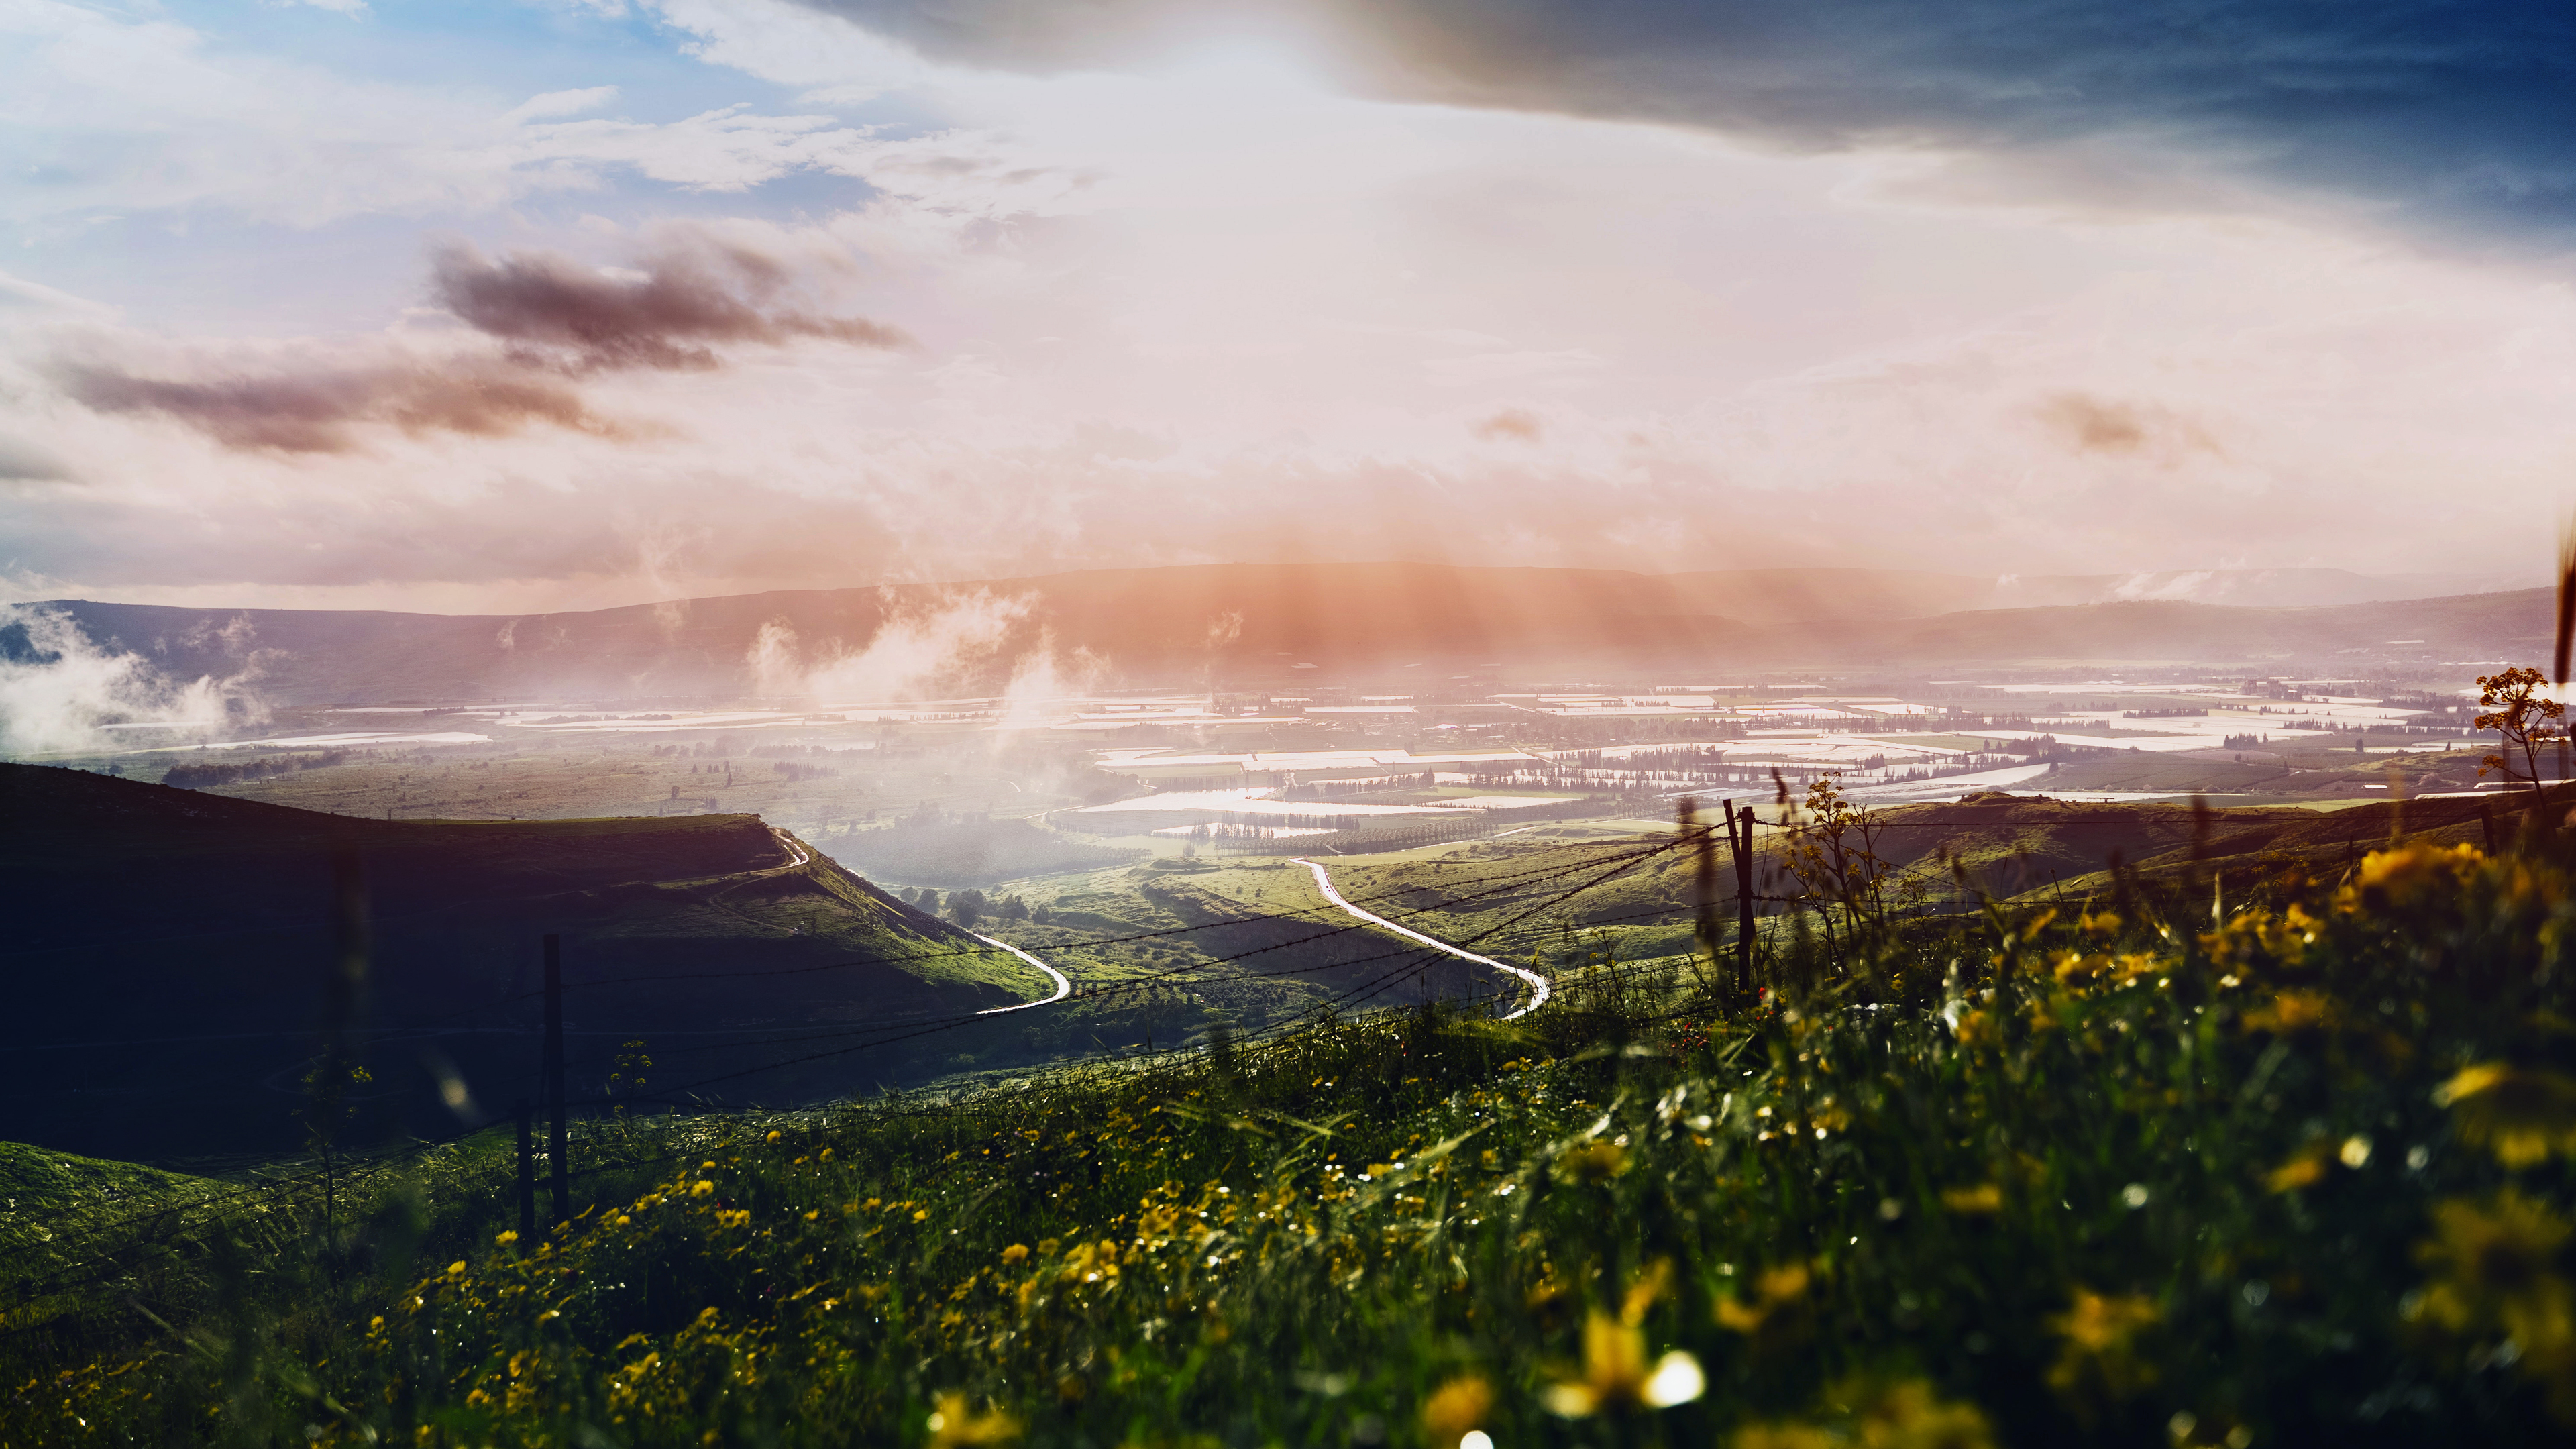 Golan Heights Wallpaper, HD City 4K Wallpapers, Images ...